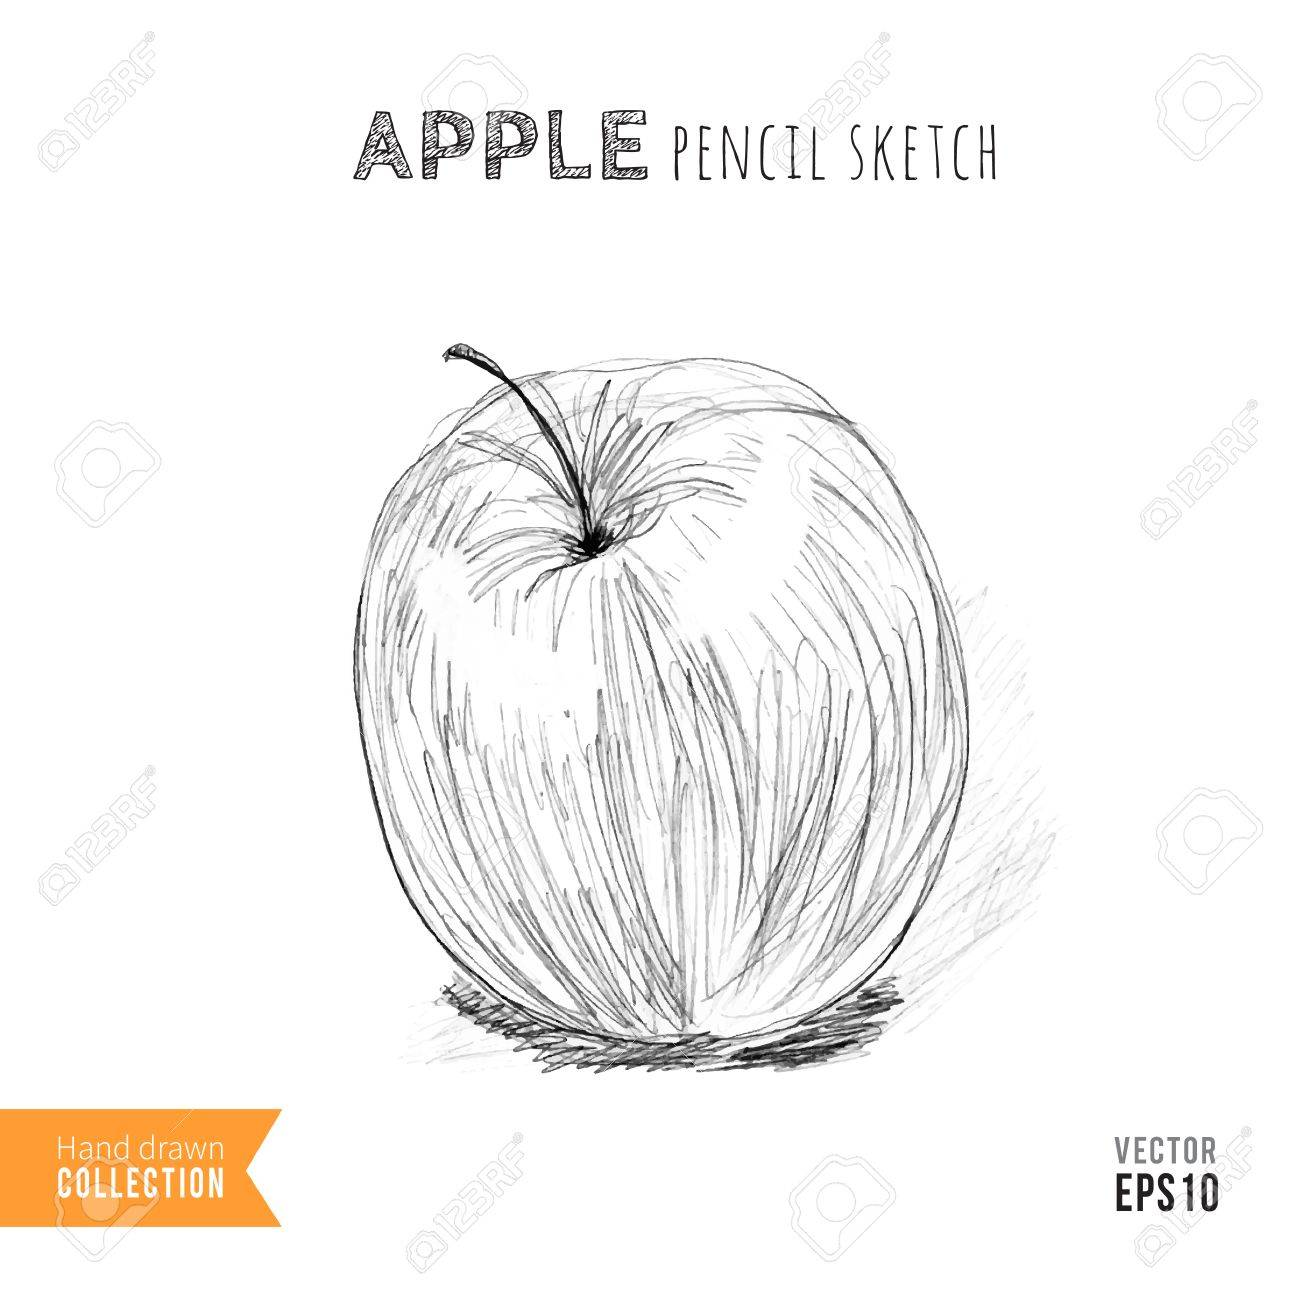 Hand drawn apple pencil sketch on white vector illustration stock vector 41741575